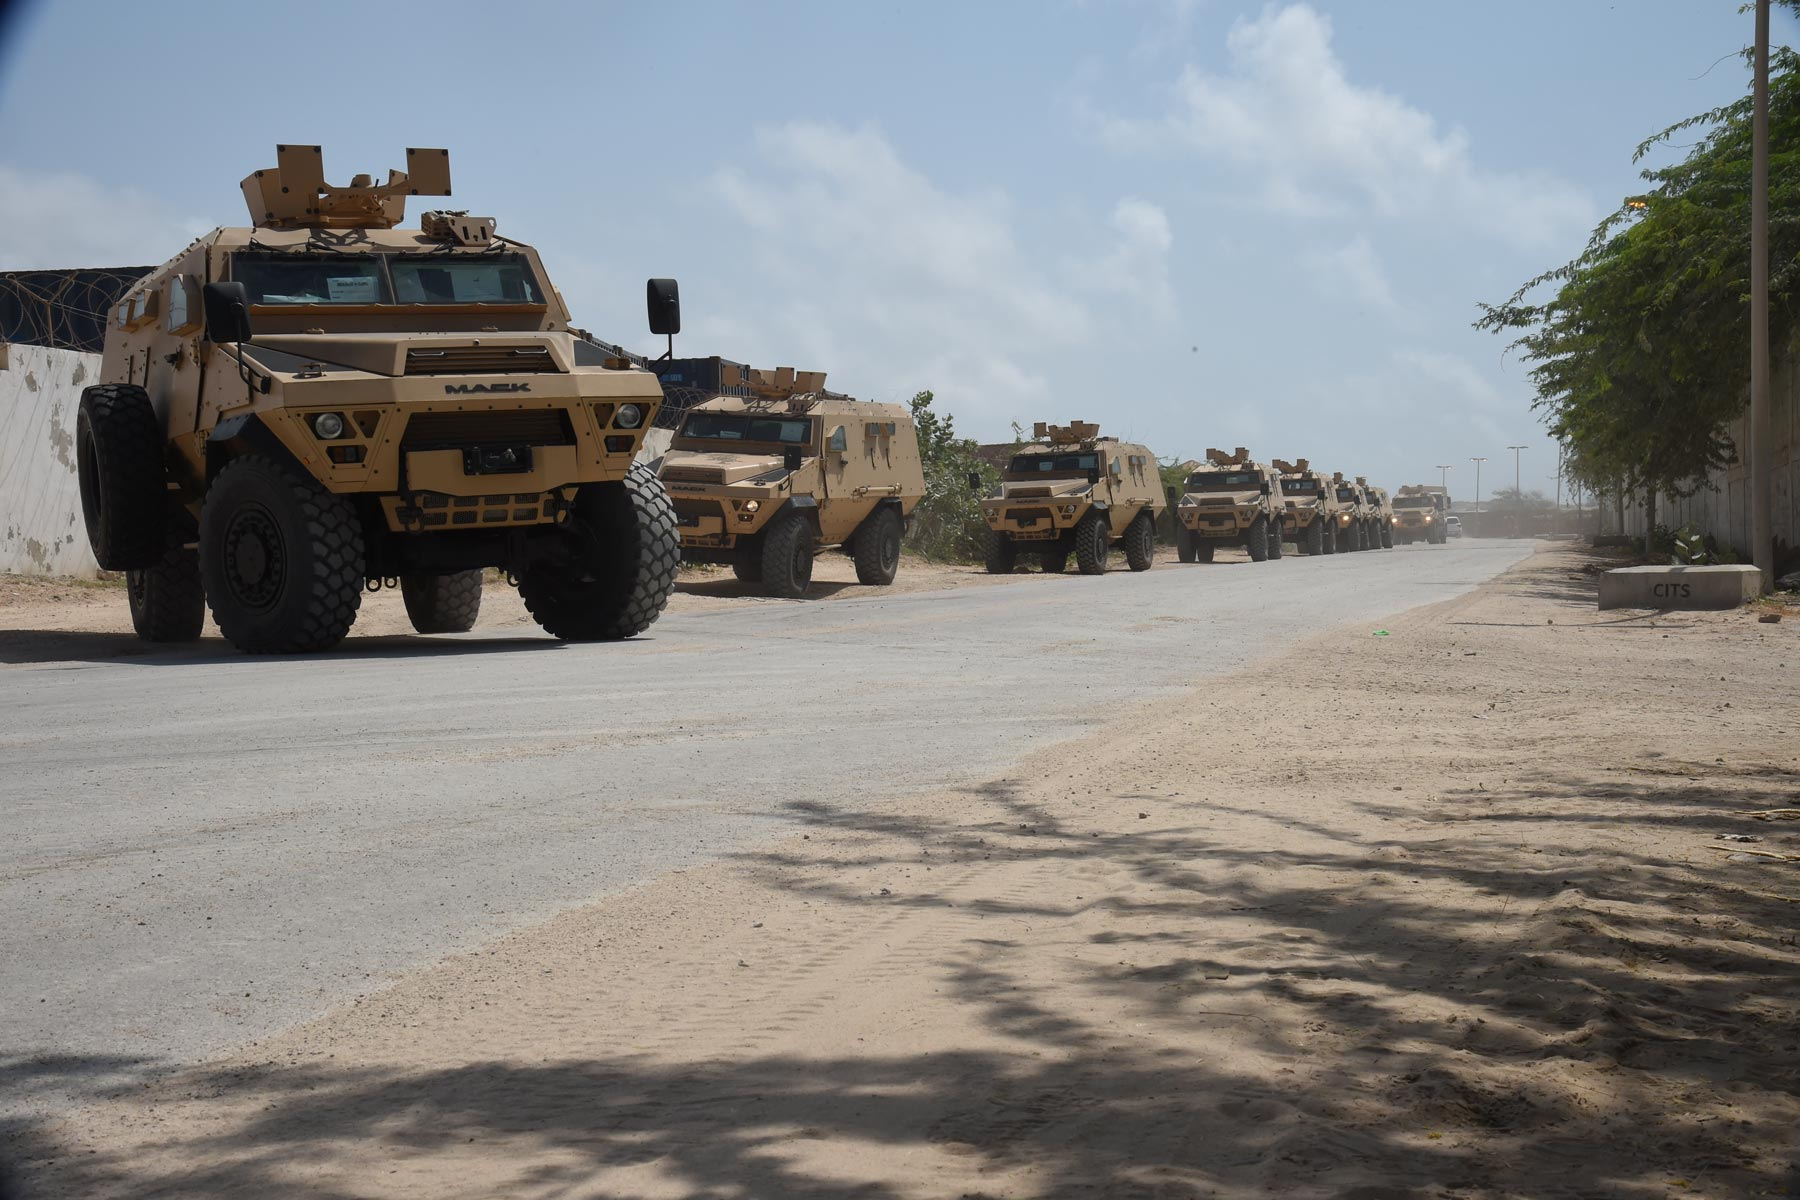 1 US Soldier Killed, 4 Wounded in Attack in Somalia